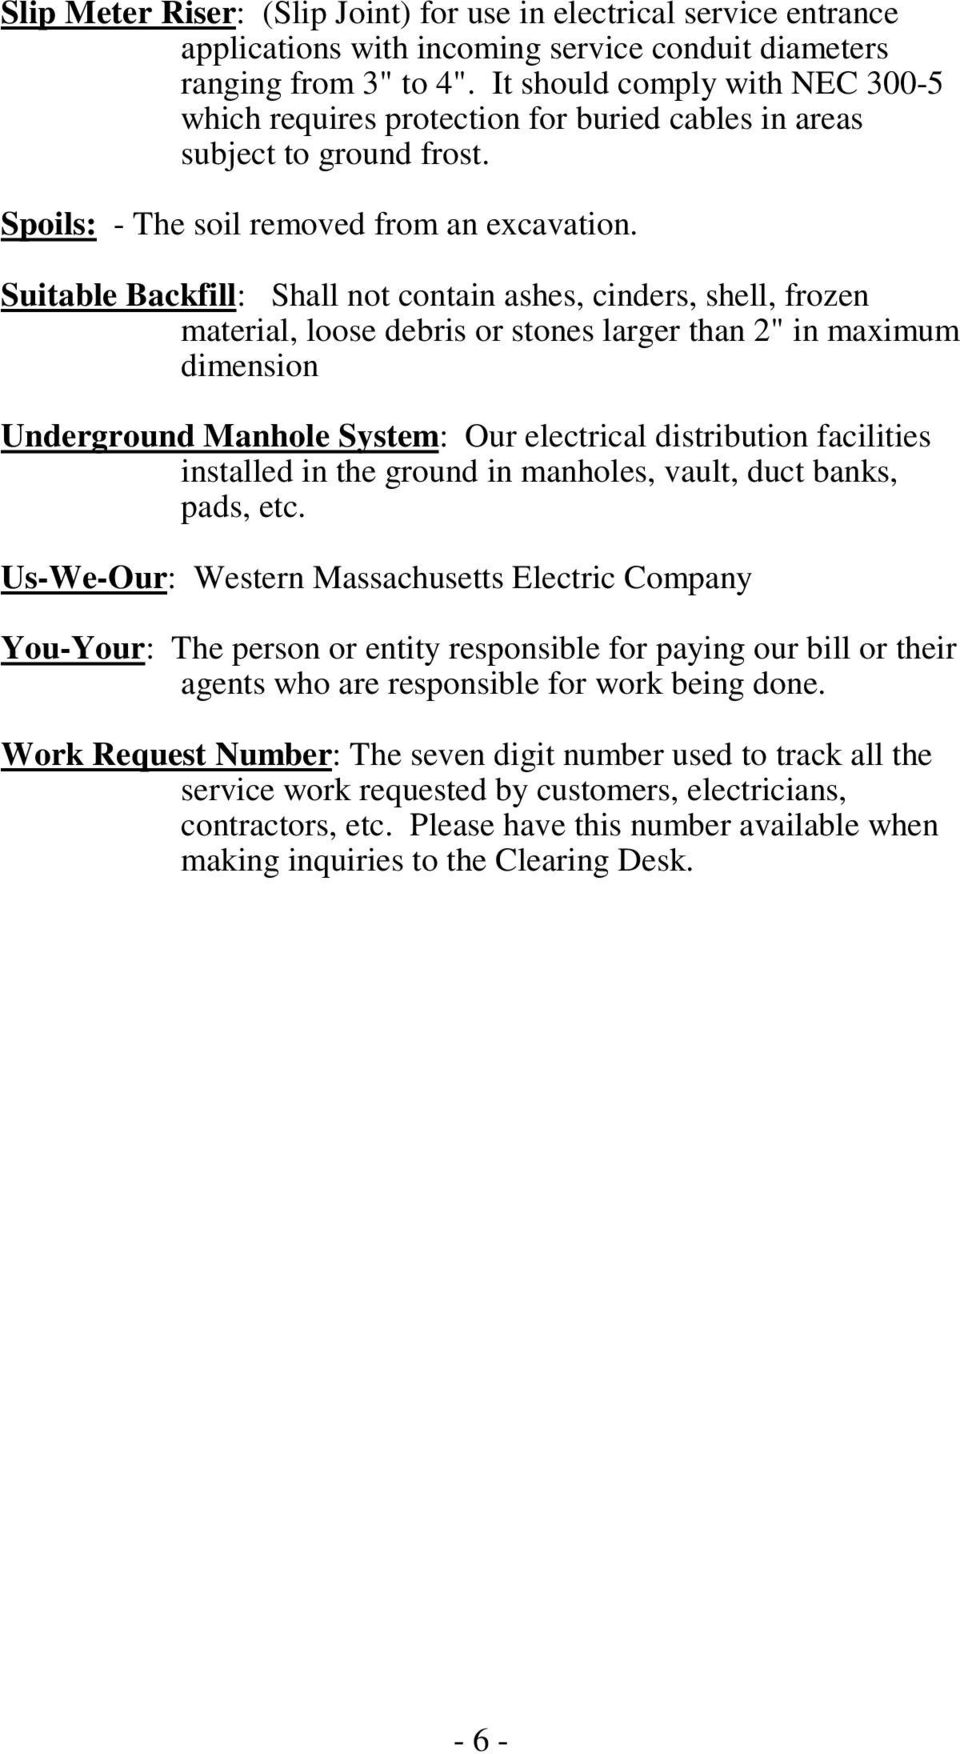 Information And Requirements For Electric Supply Below 600 Volts Pdf Underground Electrical Conduit Installations Maryland Electrician Suitable Backfill Shall Not Contain Ashes Cinders Shell Frozen Material Loose